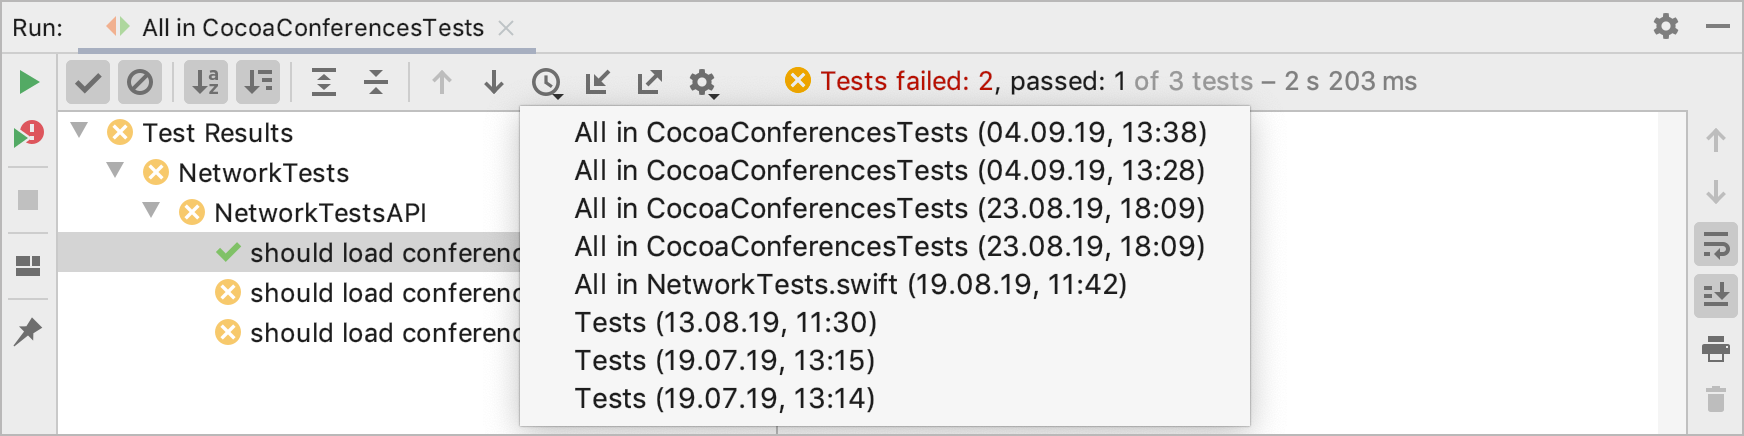 Viewing results of previous tests